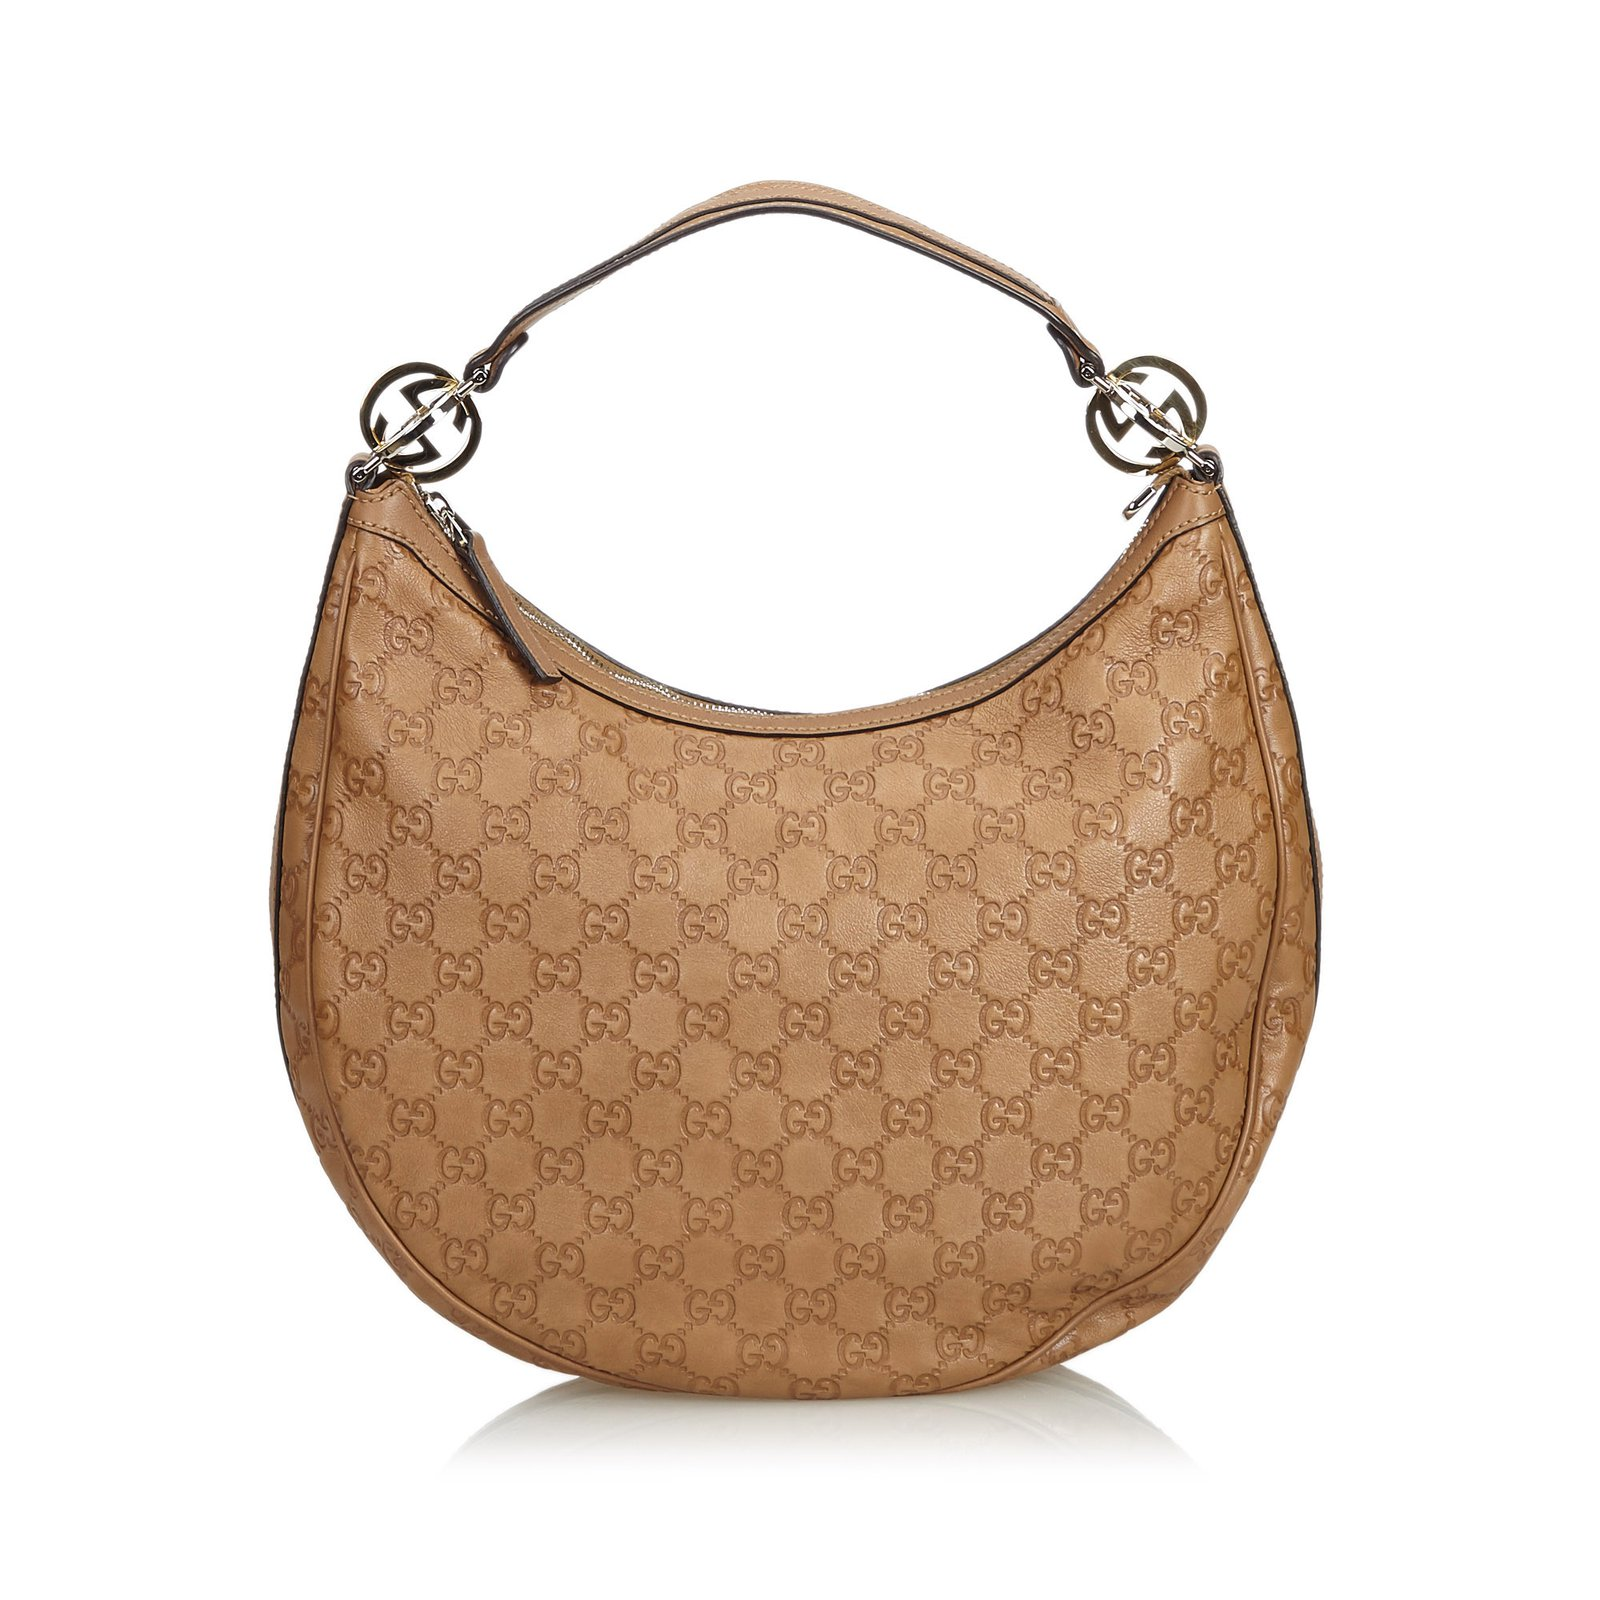 cb748311c Gucci Guccissima Twins Hobo Bag Handbags Leather,Other Brown ref.109946